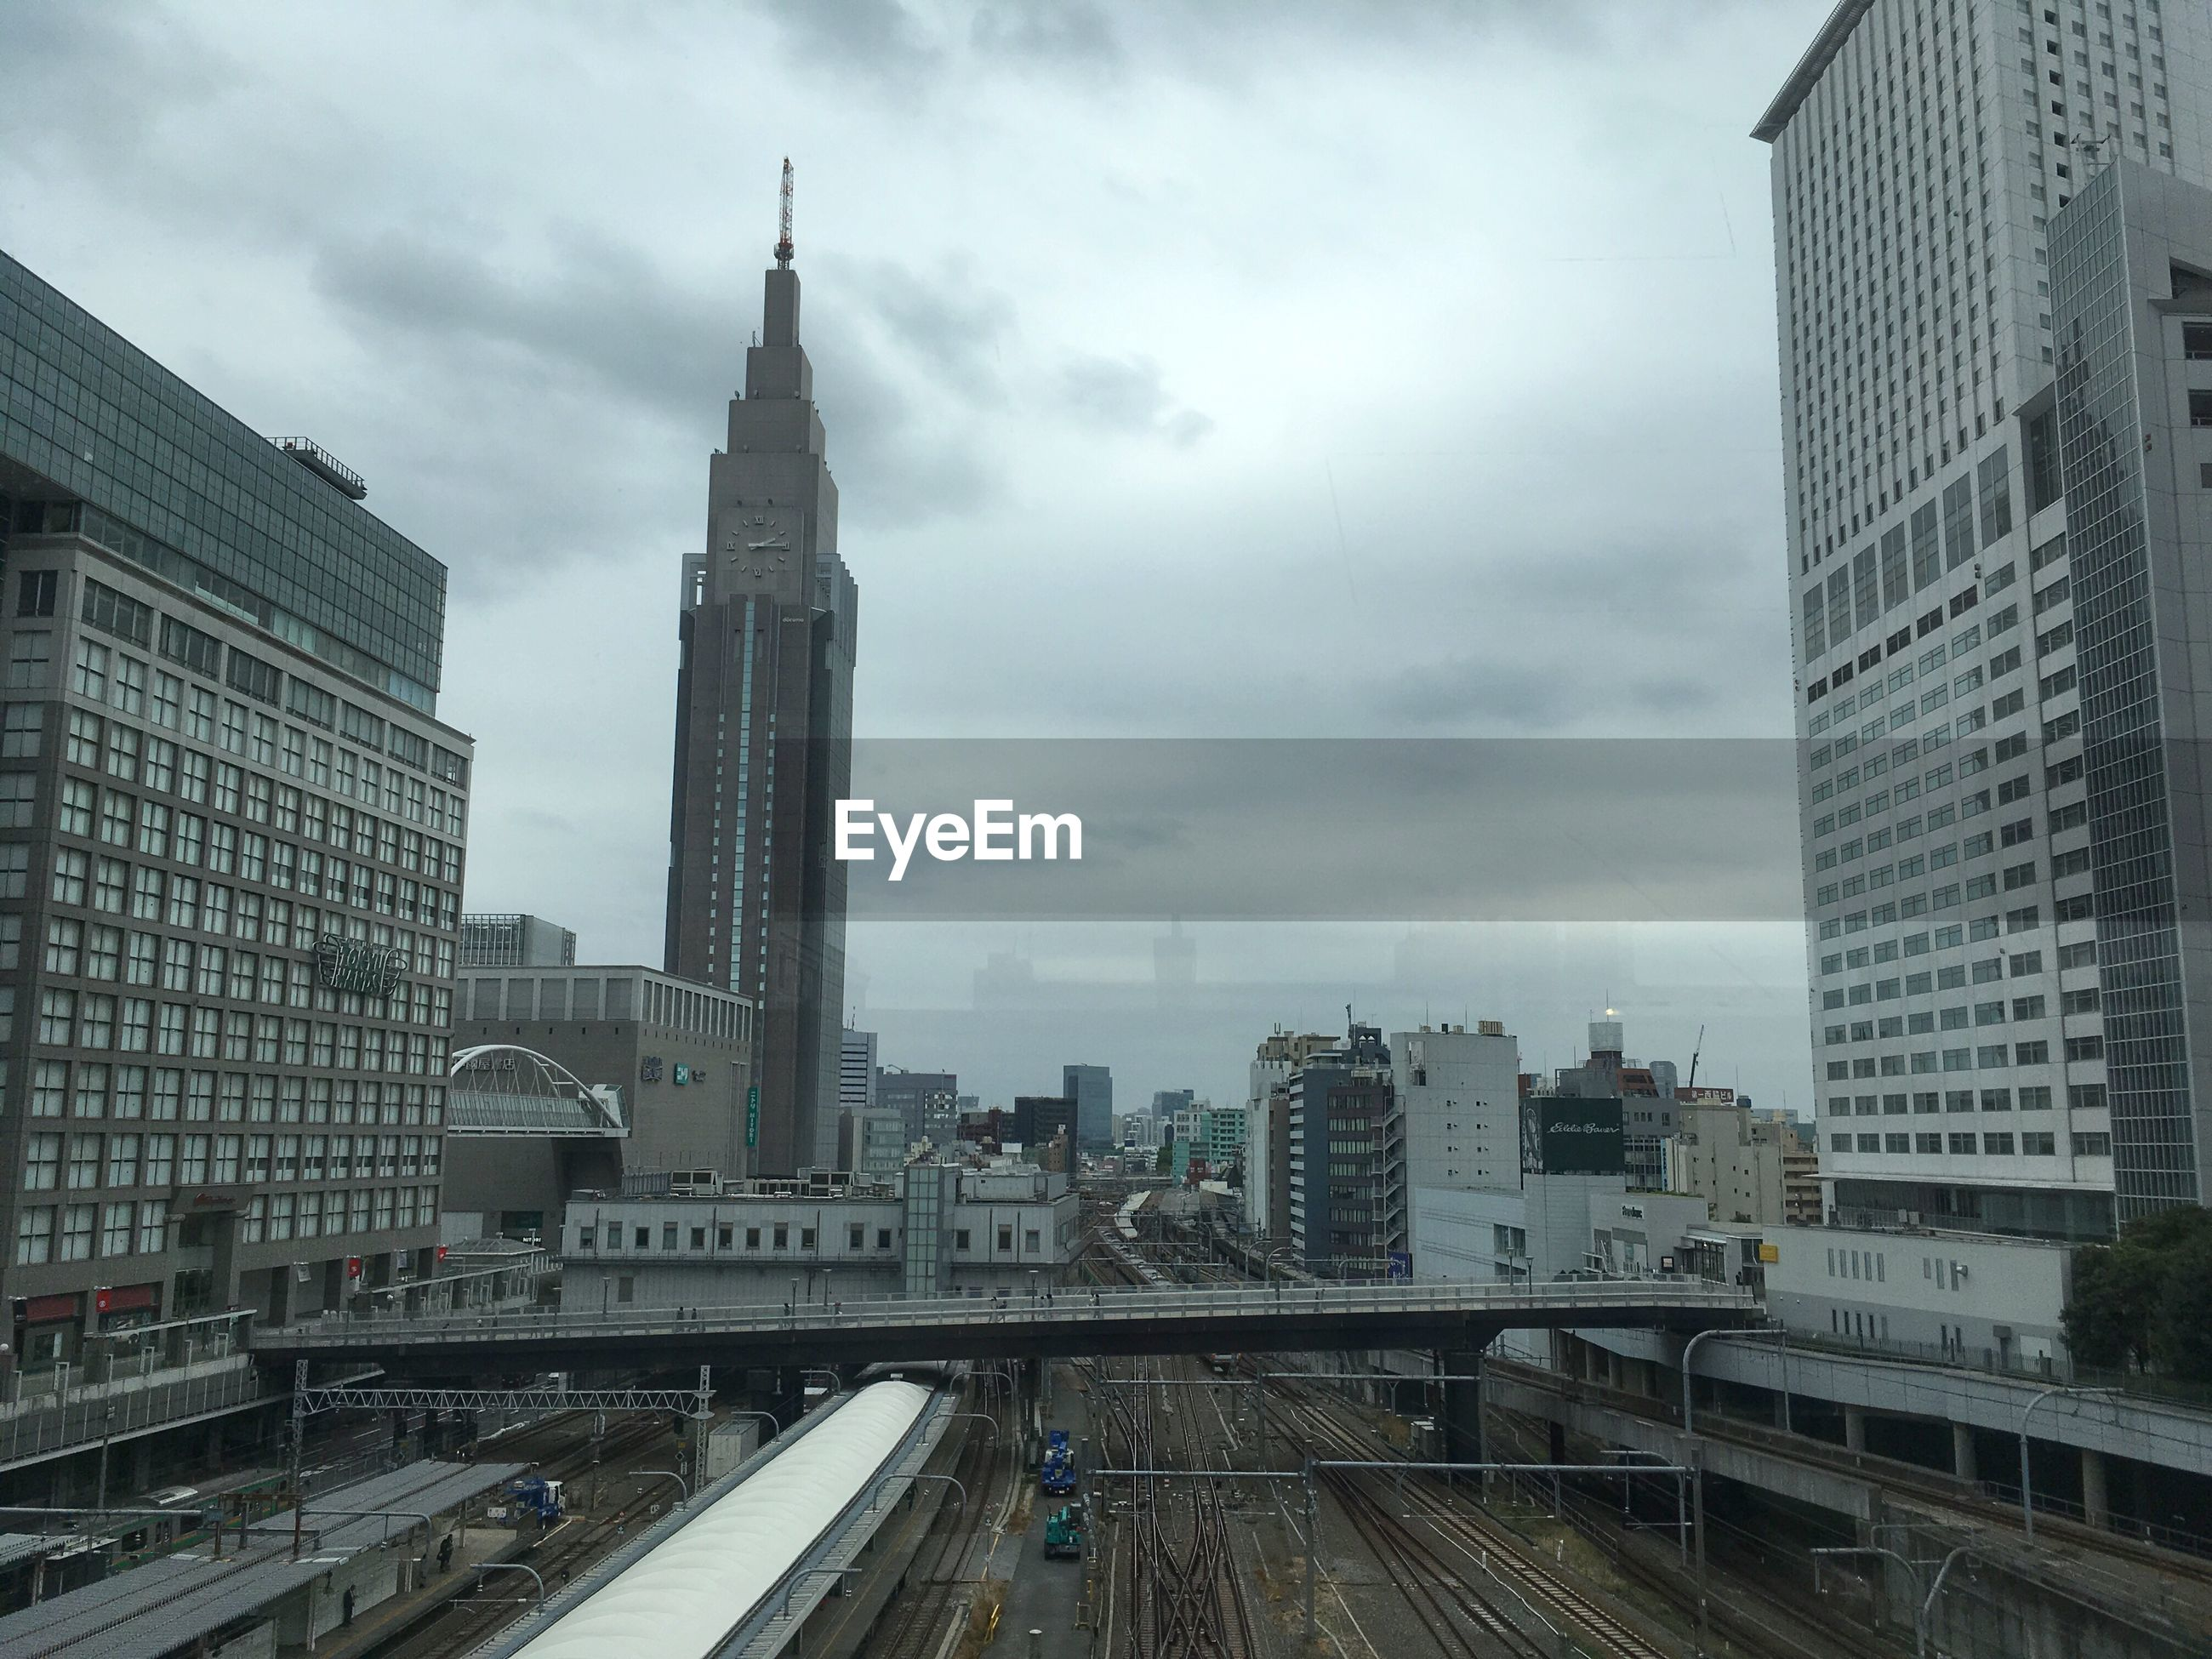 architecture, built structure, building exterior, city, building, sky, cloud - sky, tall - high, office building exterior, tower, skyscraper, cityscape, transportation, no people, rail transportation, mode of transportation, bridge, train, office, modern, bridge - man made structure, outdoors, financial district, spire